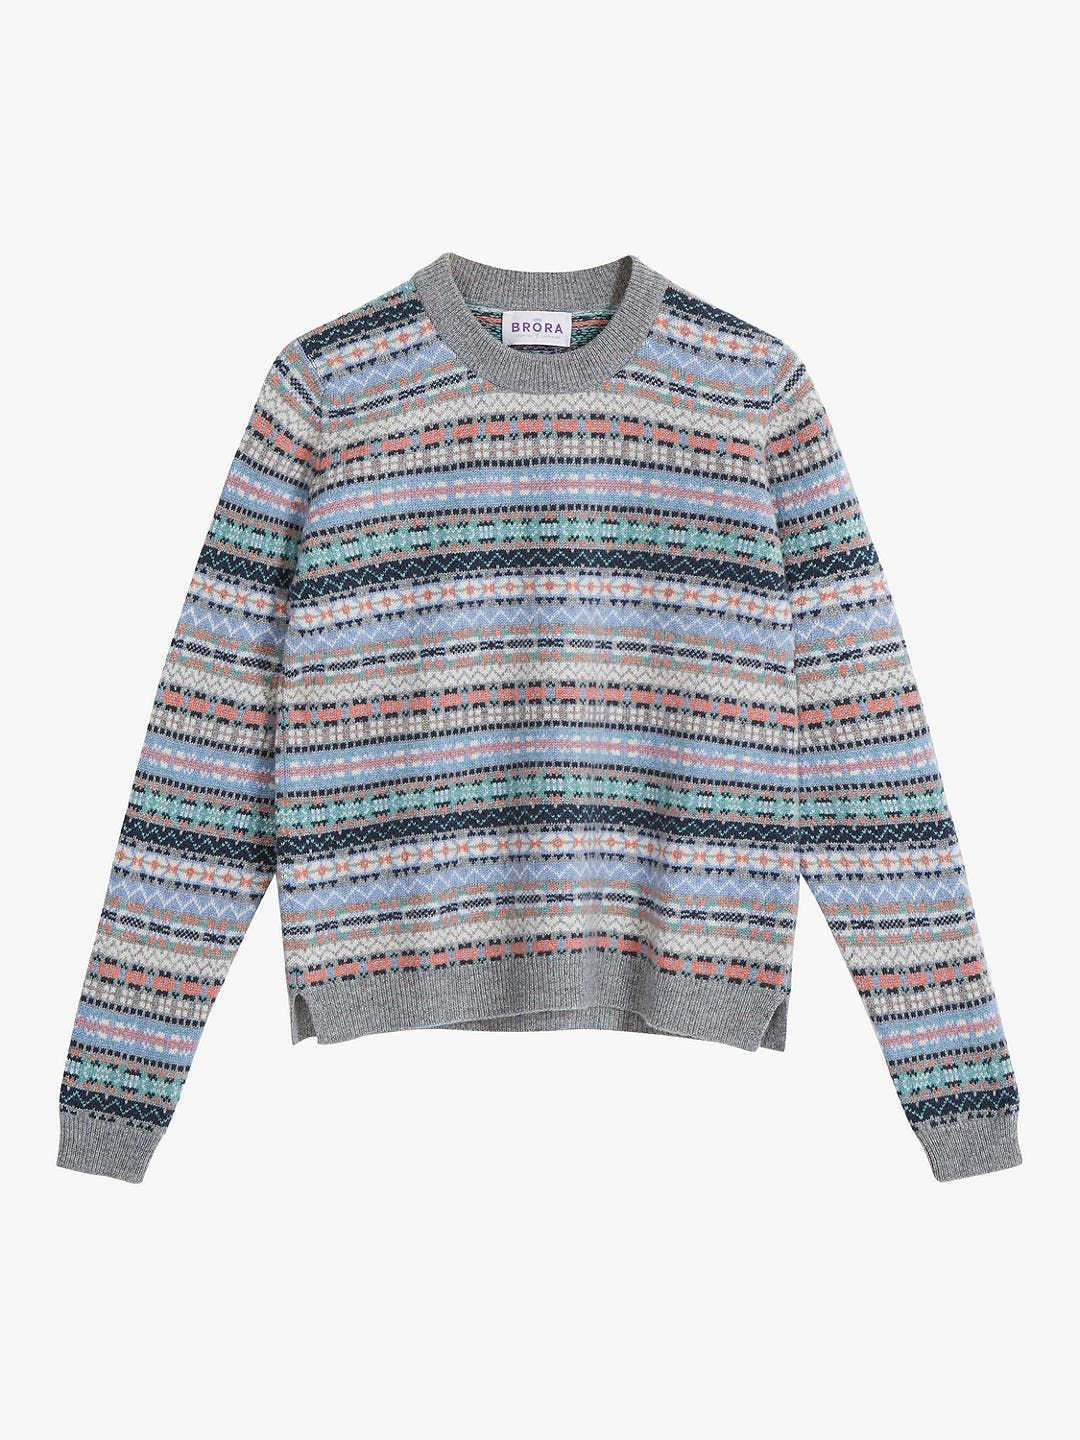 1cbd057b4f3 21 of the best Christmas jumpers to don this festive season ...